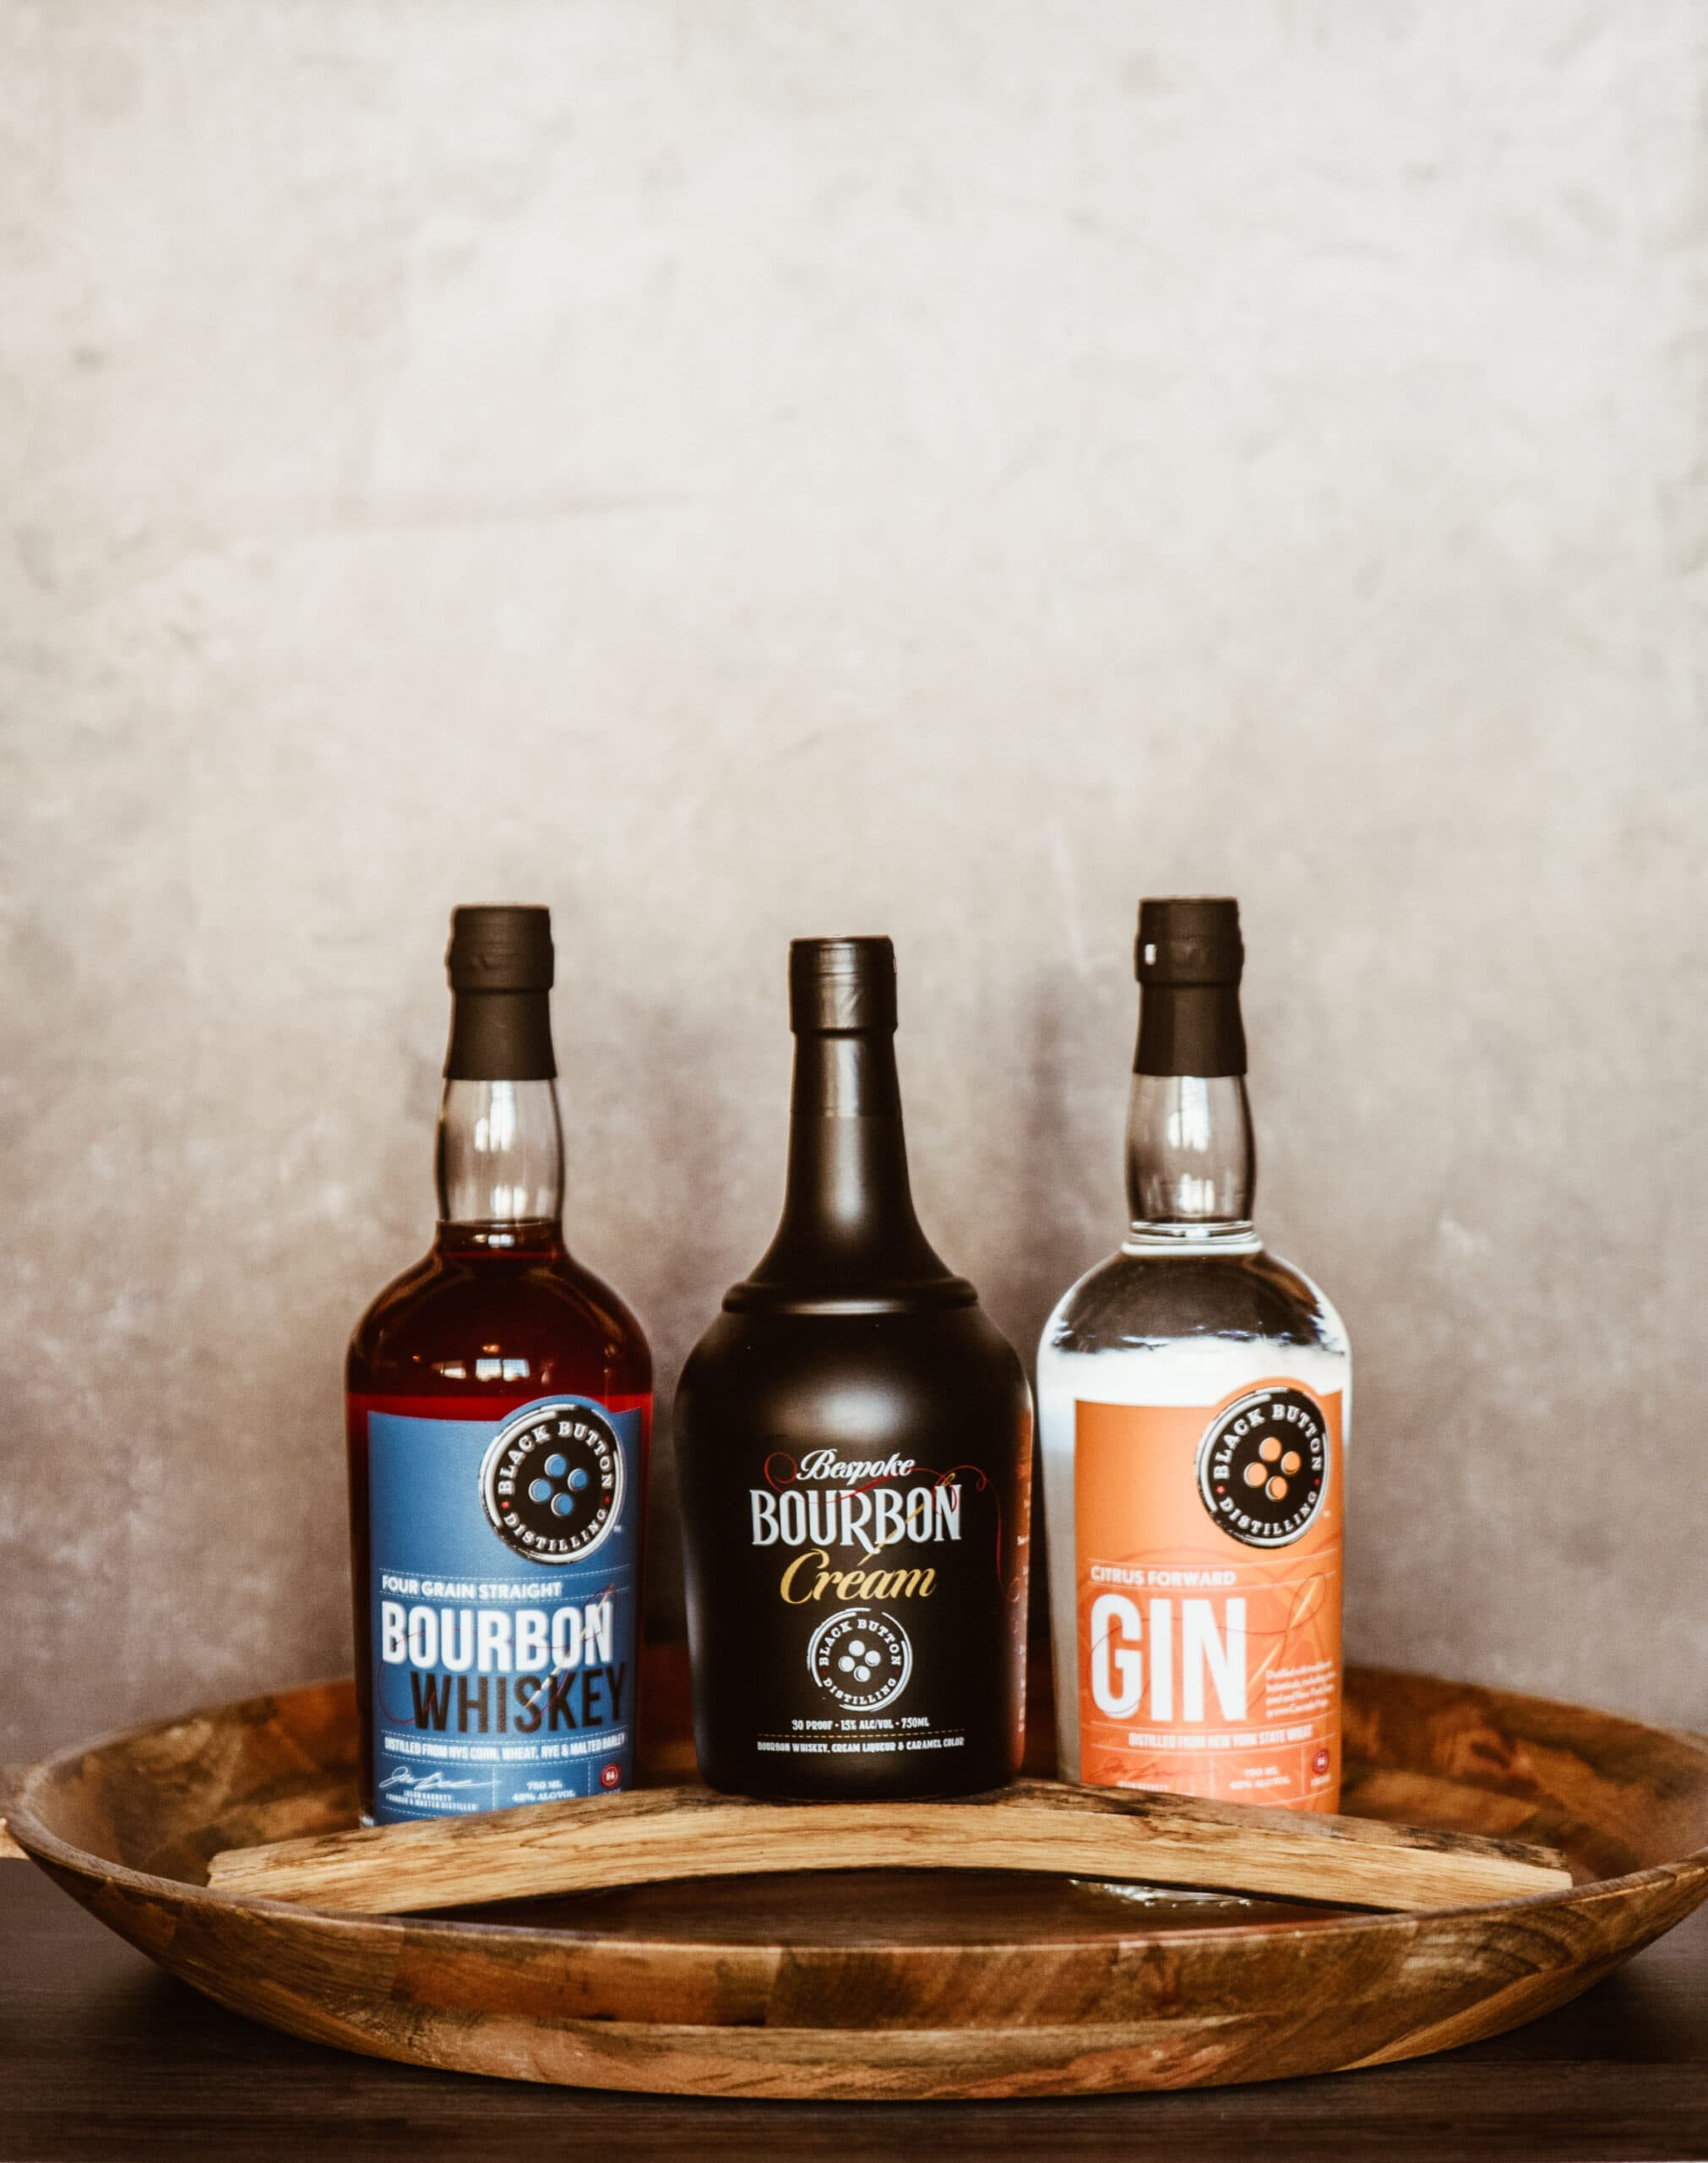 Black Button Bourbon Cream and Gin bottles